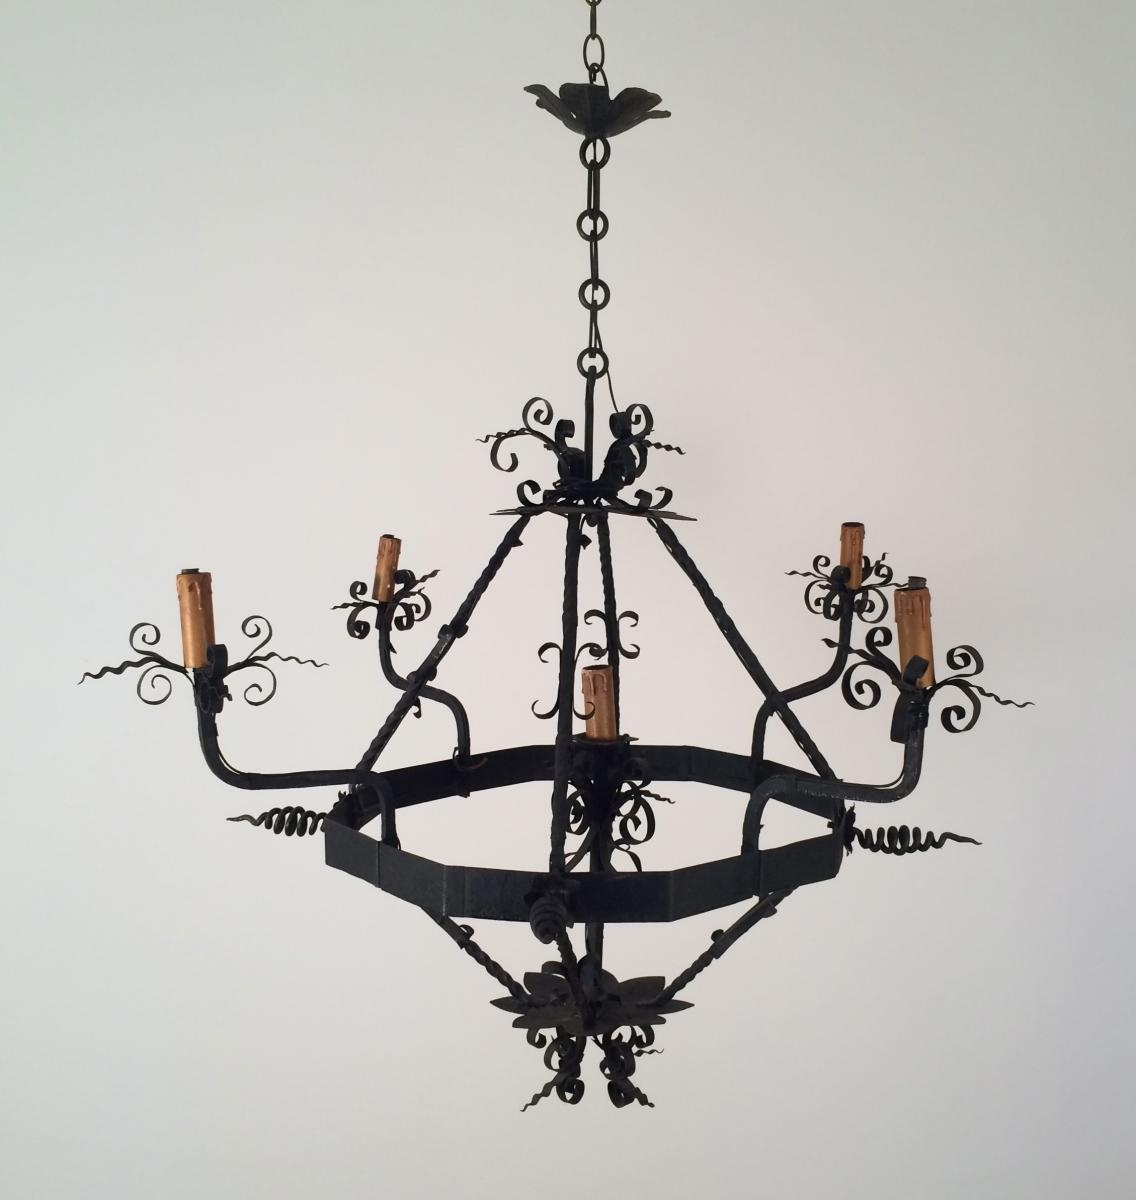 Vintage Wrought Iron Chandelier 1960s For Sale At Pamono Regarding Vintage Wrought Iron Chandelier (Image 14 of 15)